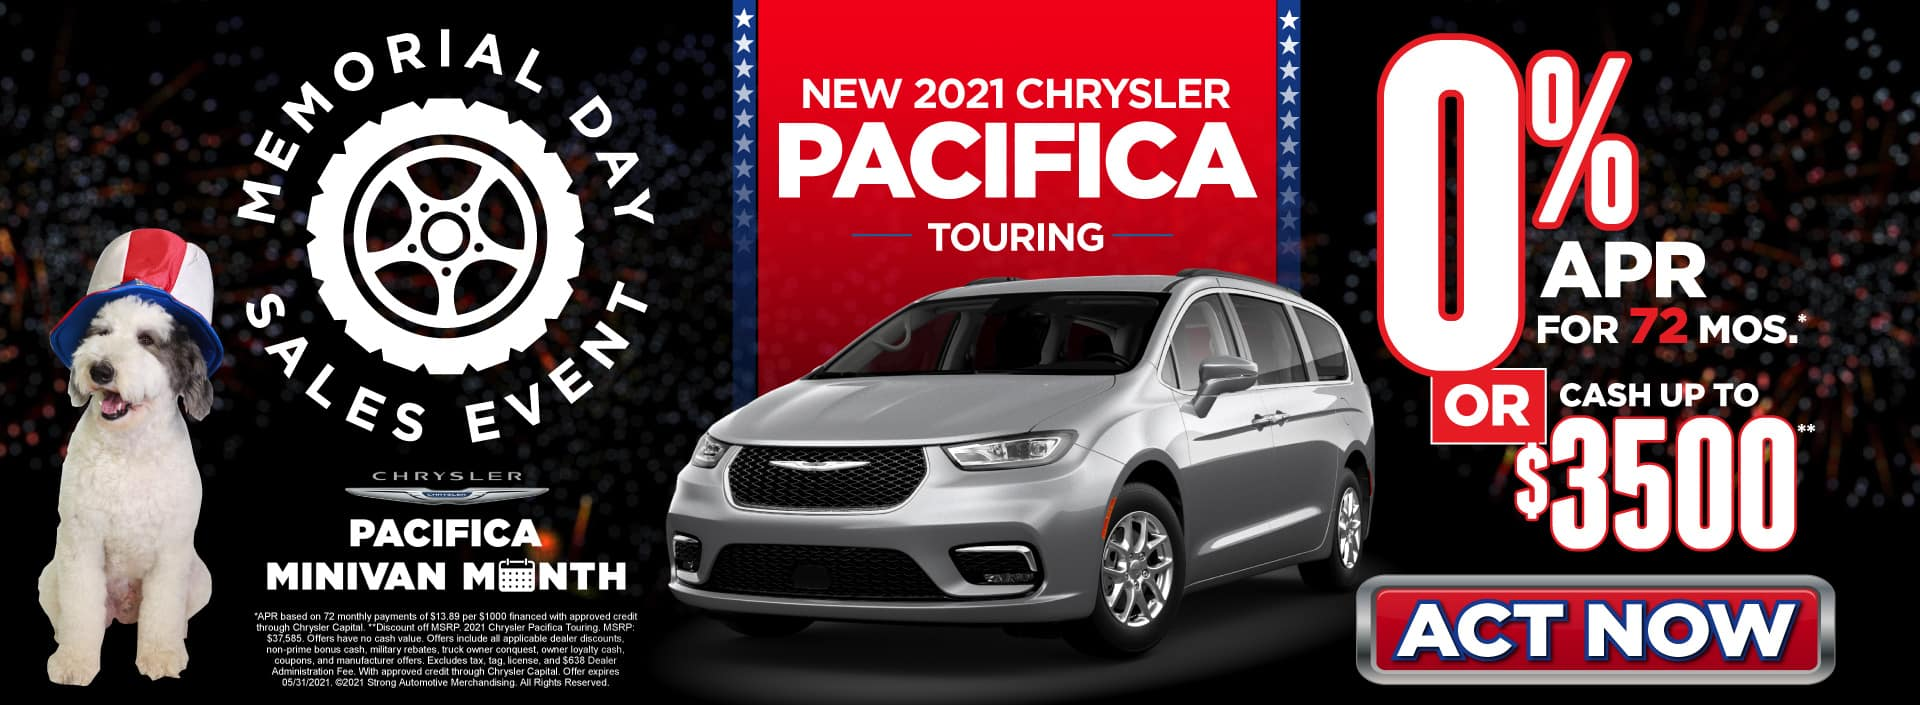 New 2021 Chrysler Pacifica - 0% APR for 72 months - Act Now